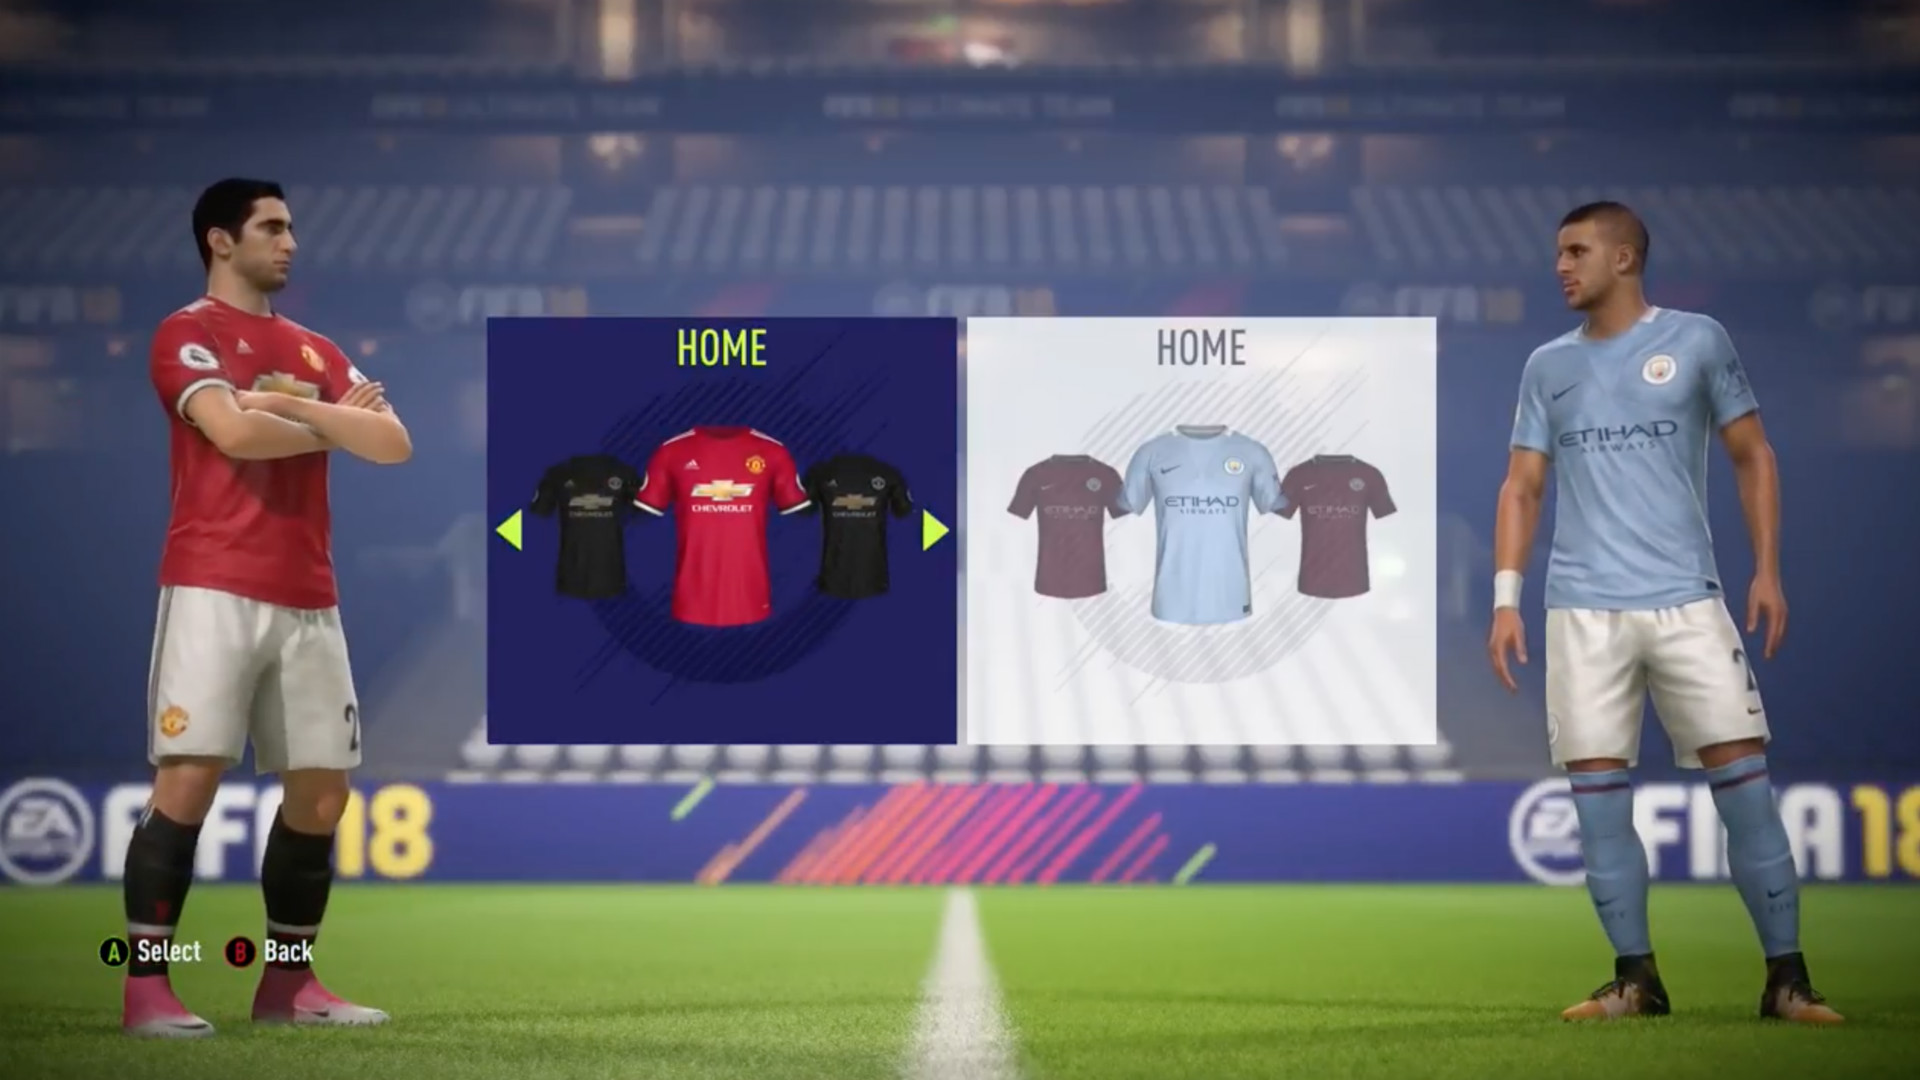 FIFA 18 easter eggs: Five hidden quirks you might not have noticed